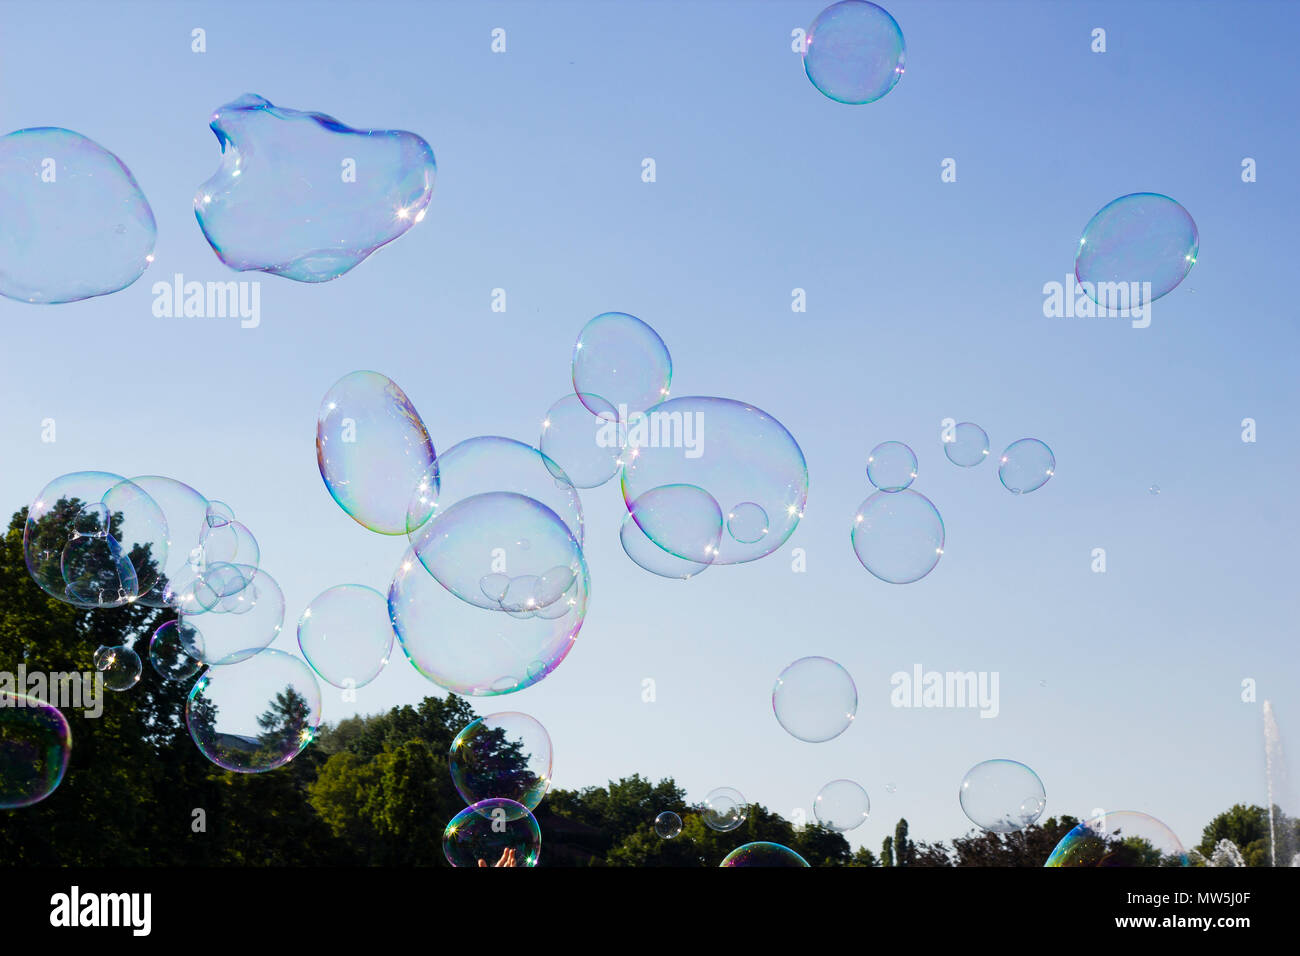 Many large soap bubbles flying in air against blue sky, sunny summer day in city - Stock Image